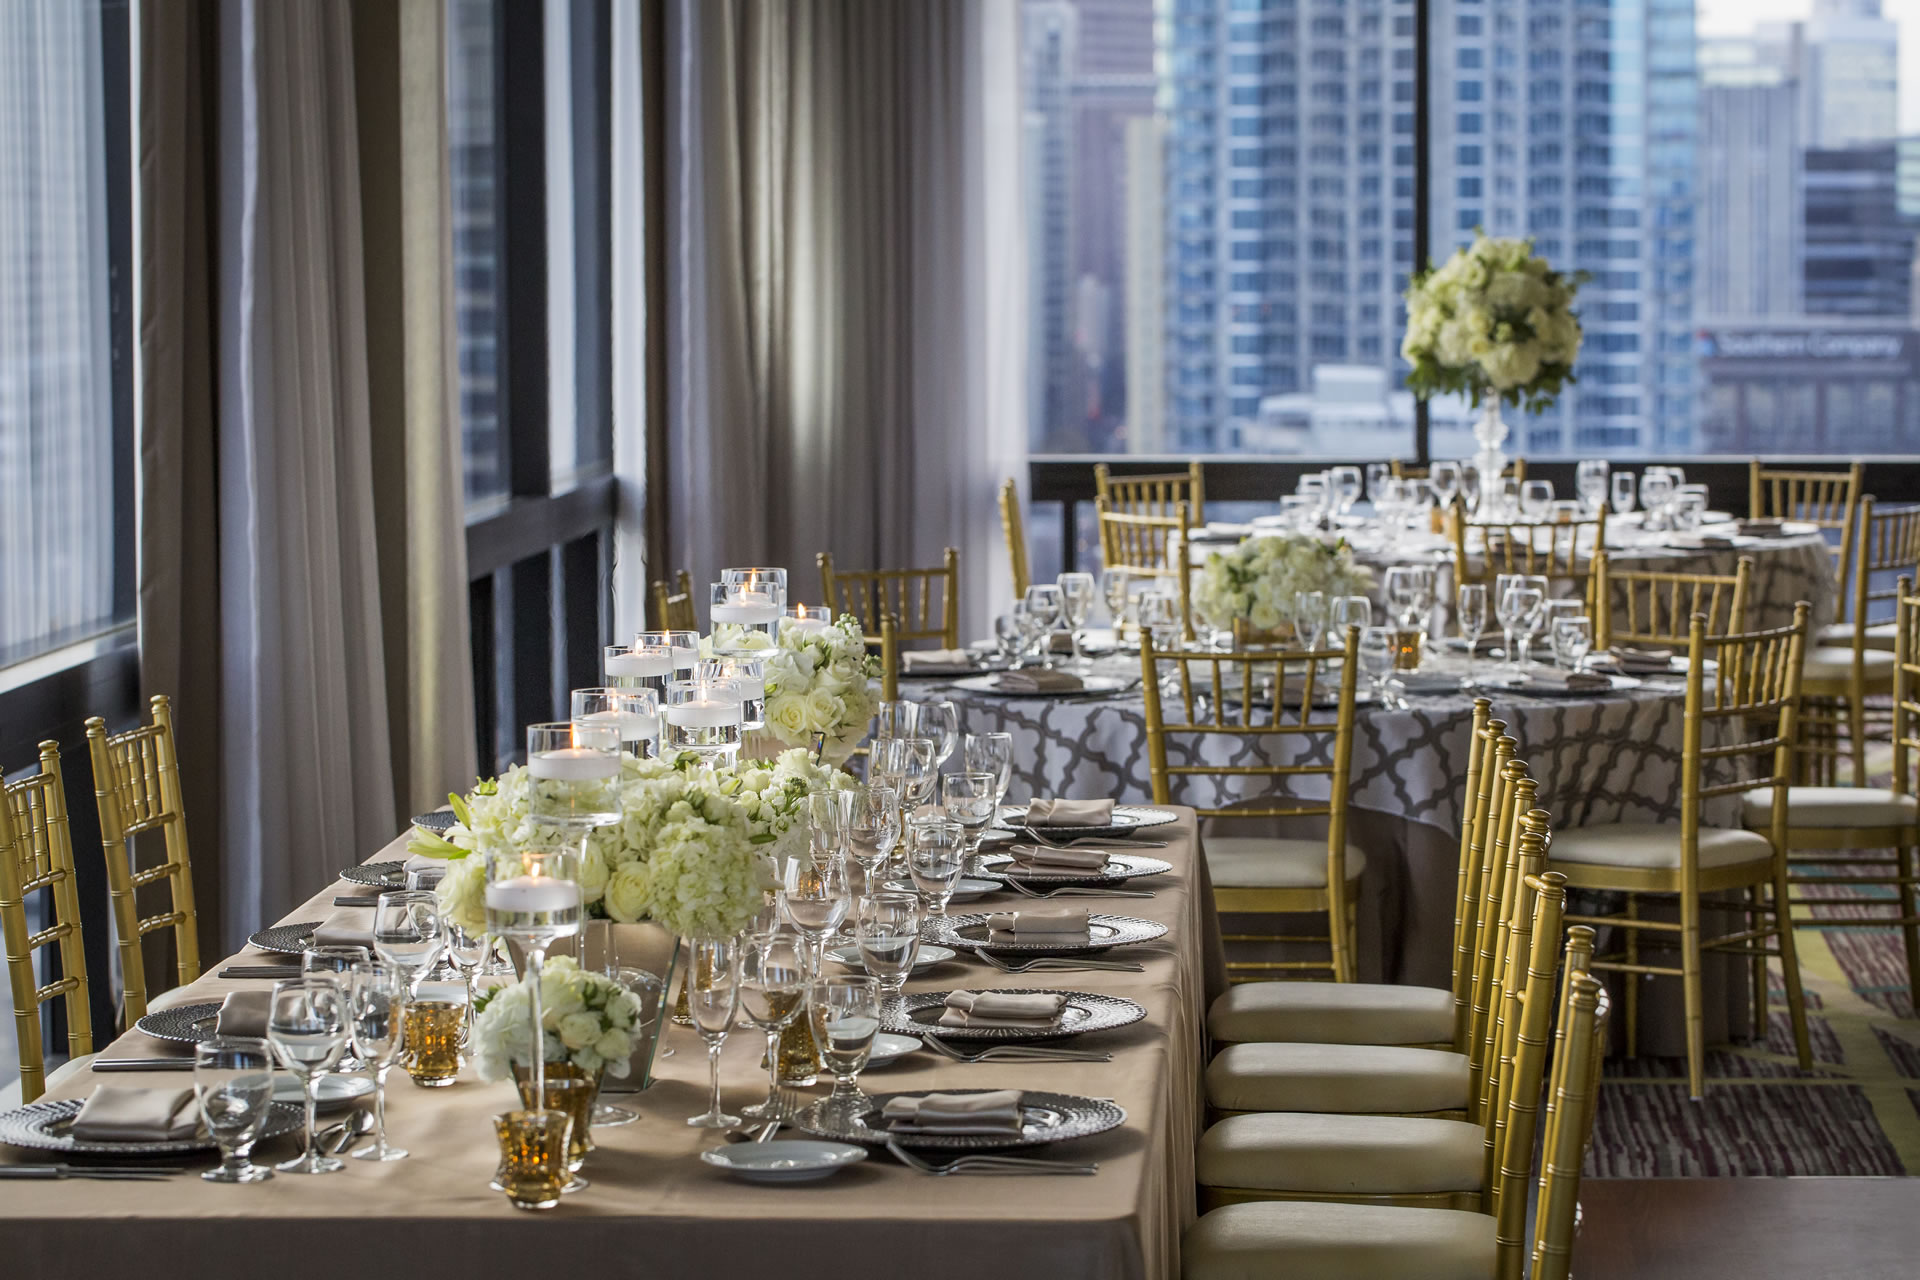 The estate table for a wedding reception at the SKY Room East at the Crowne Plaza Atlanta Midtown.